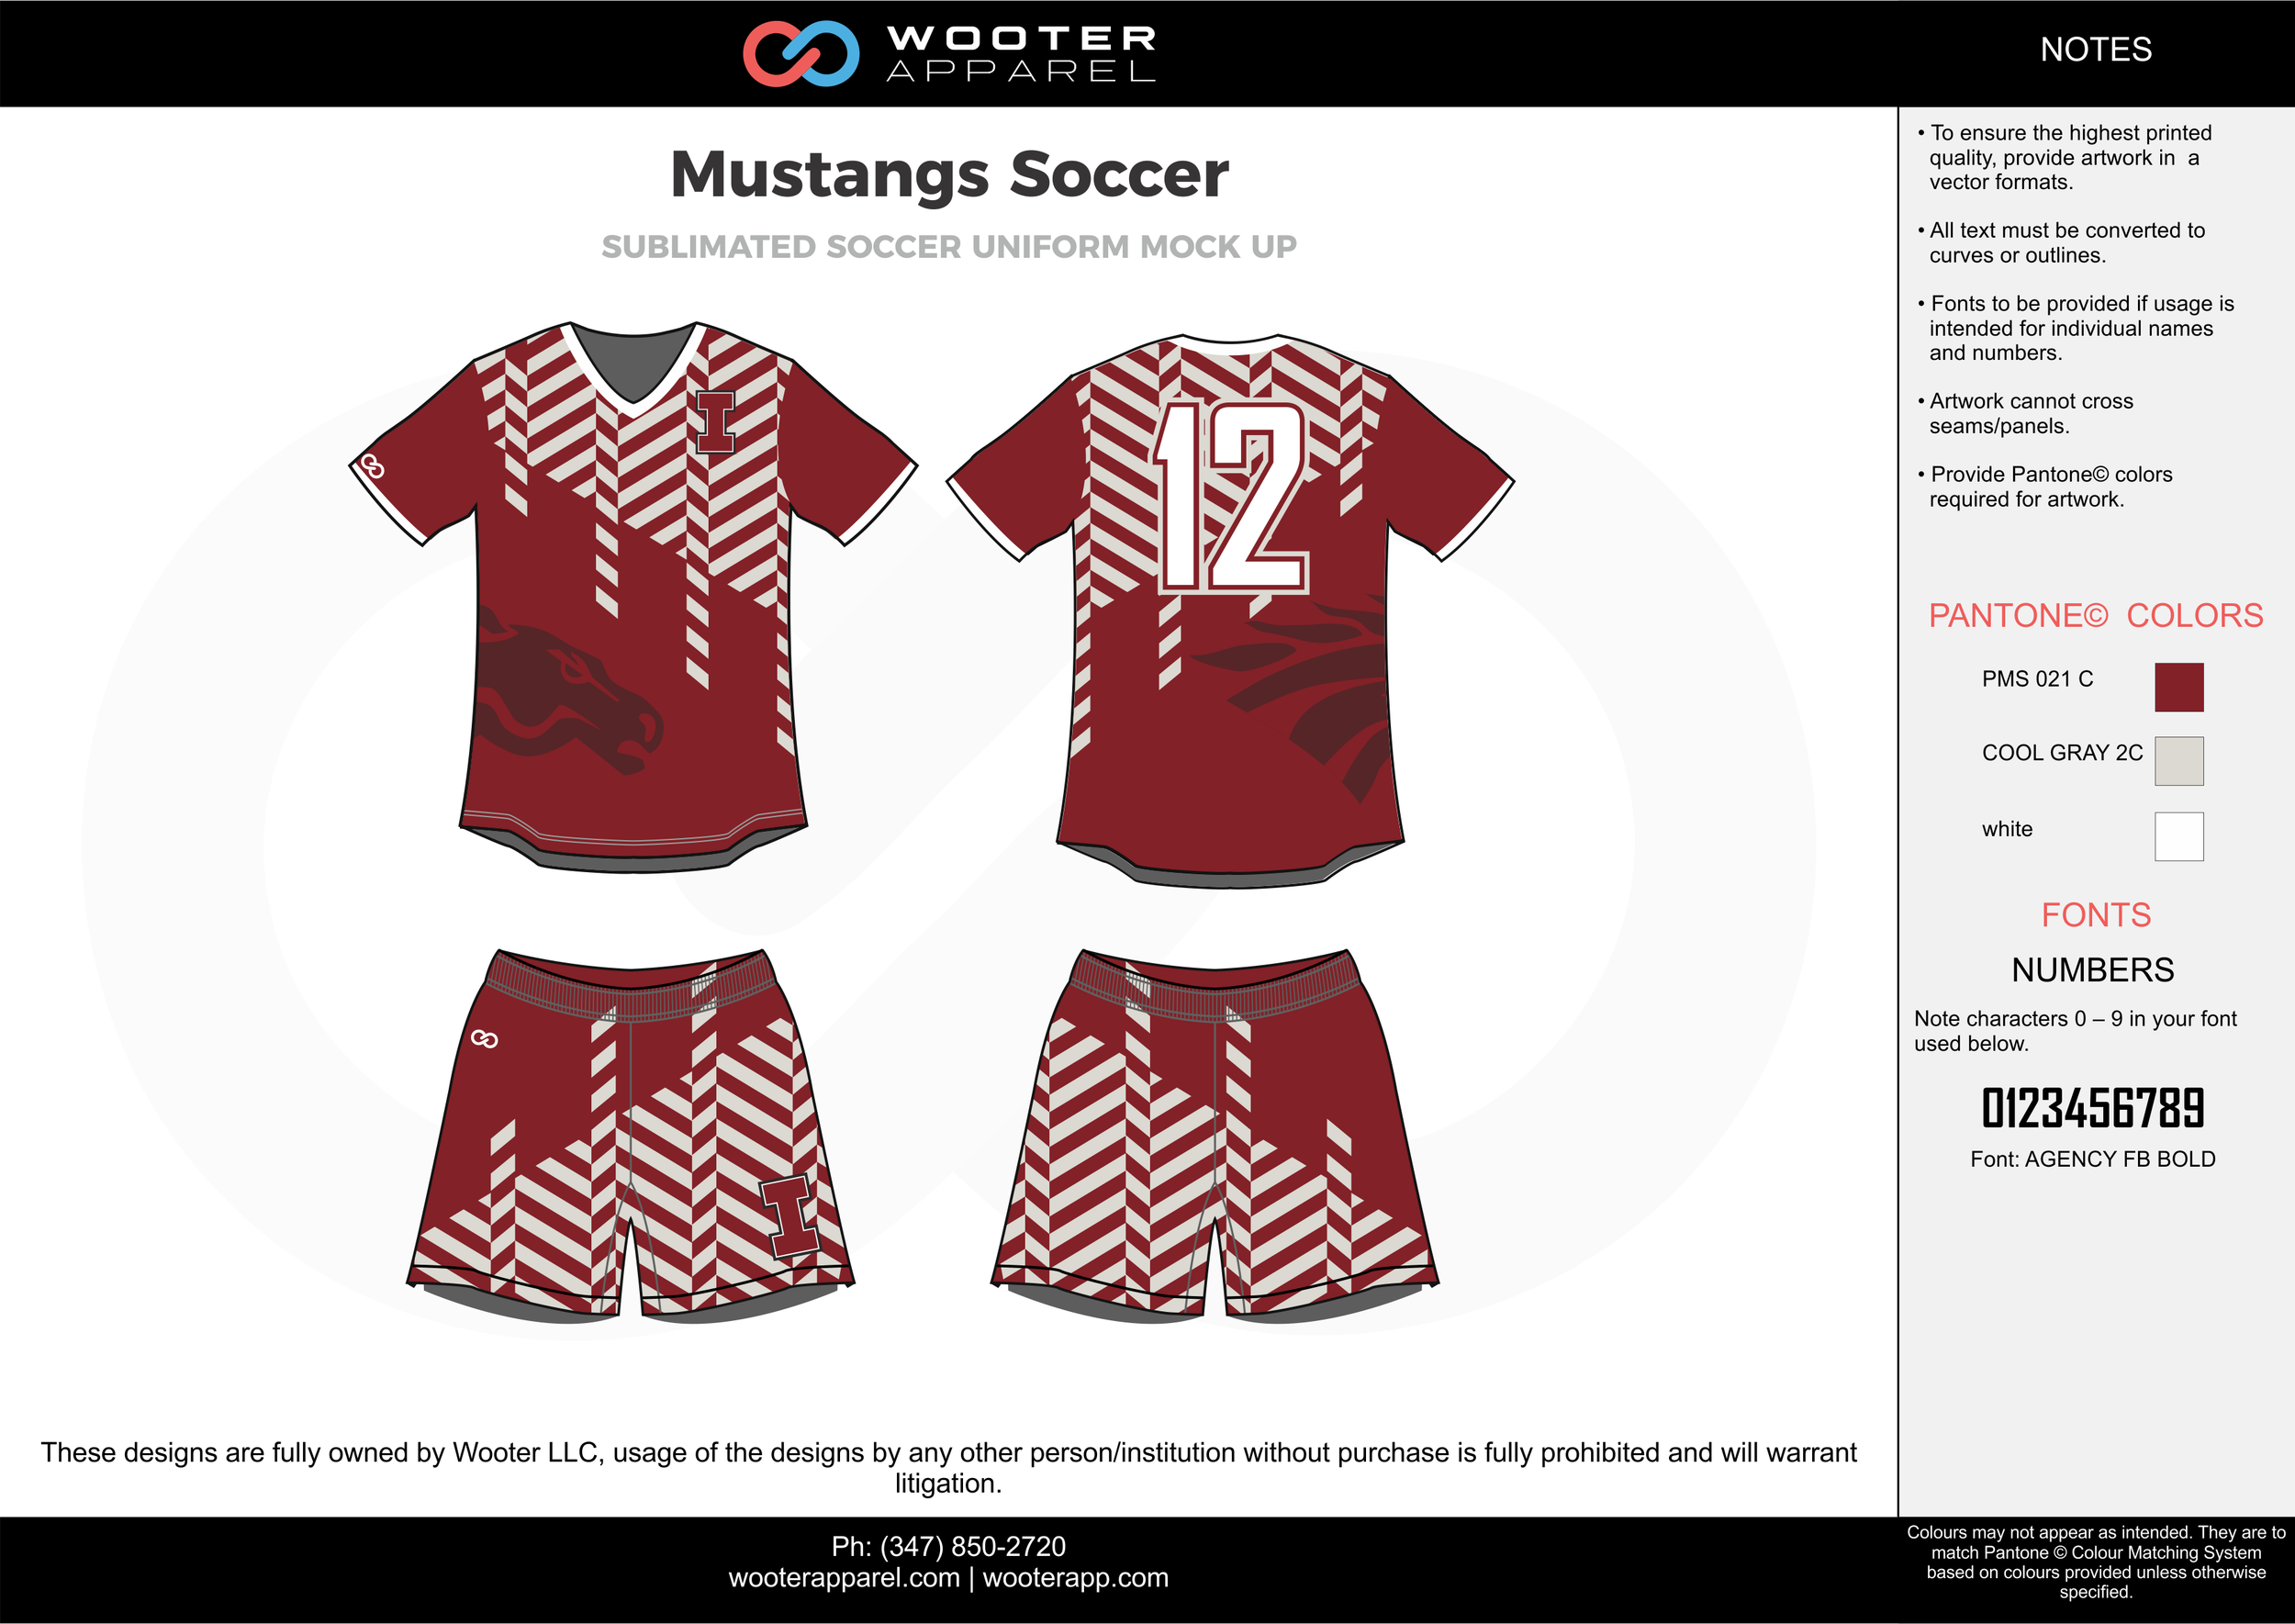 Mustangs Soccer maroon white custom sublimated soccer uniform jersey shirt shorts